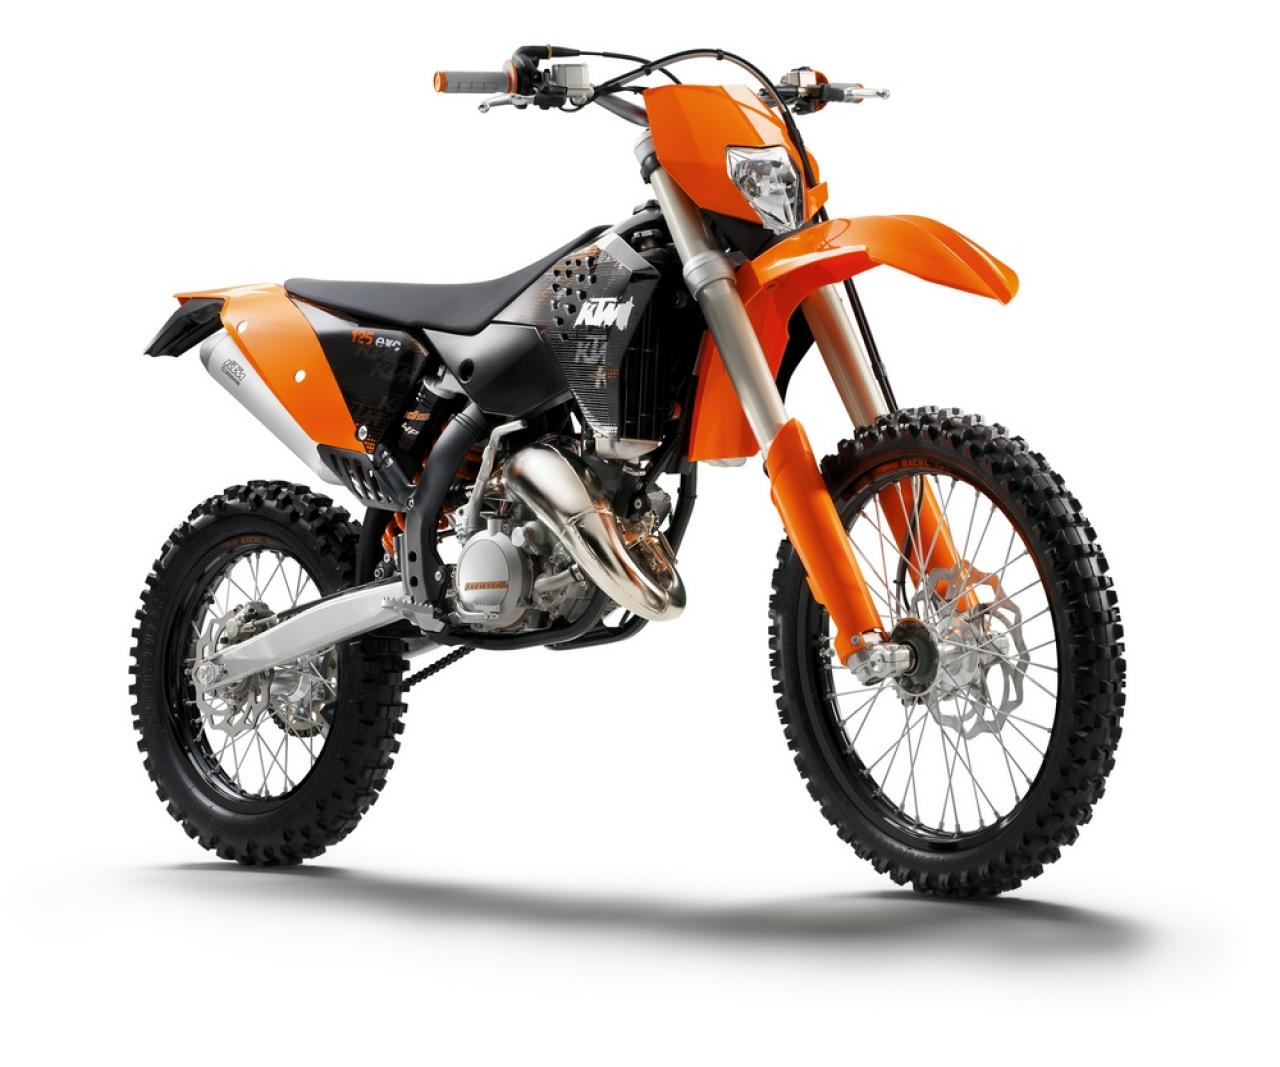 ktm ktm exe 125 enduro moto zombdrive com. Black Bedroom Furniture Sets. Home Design Ideas